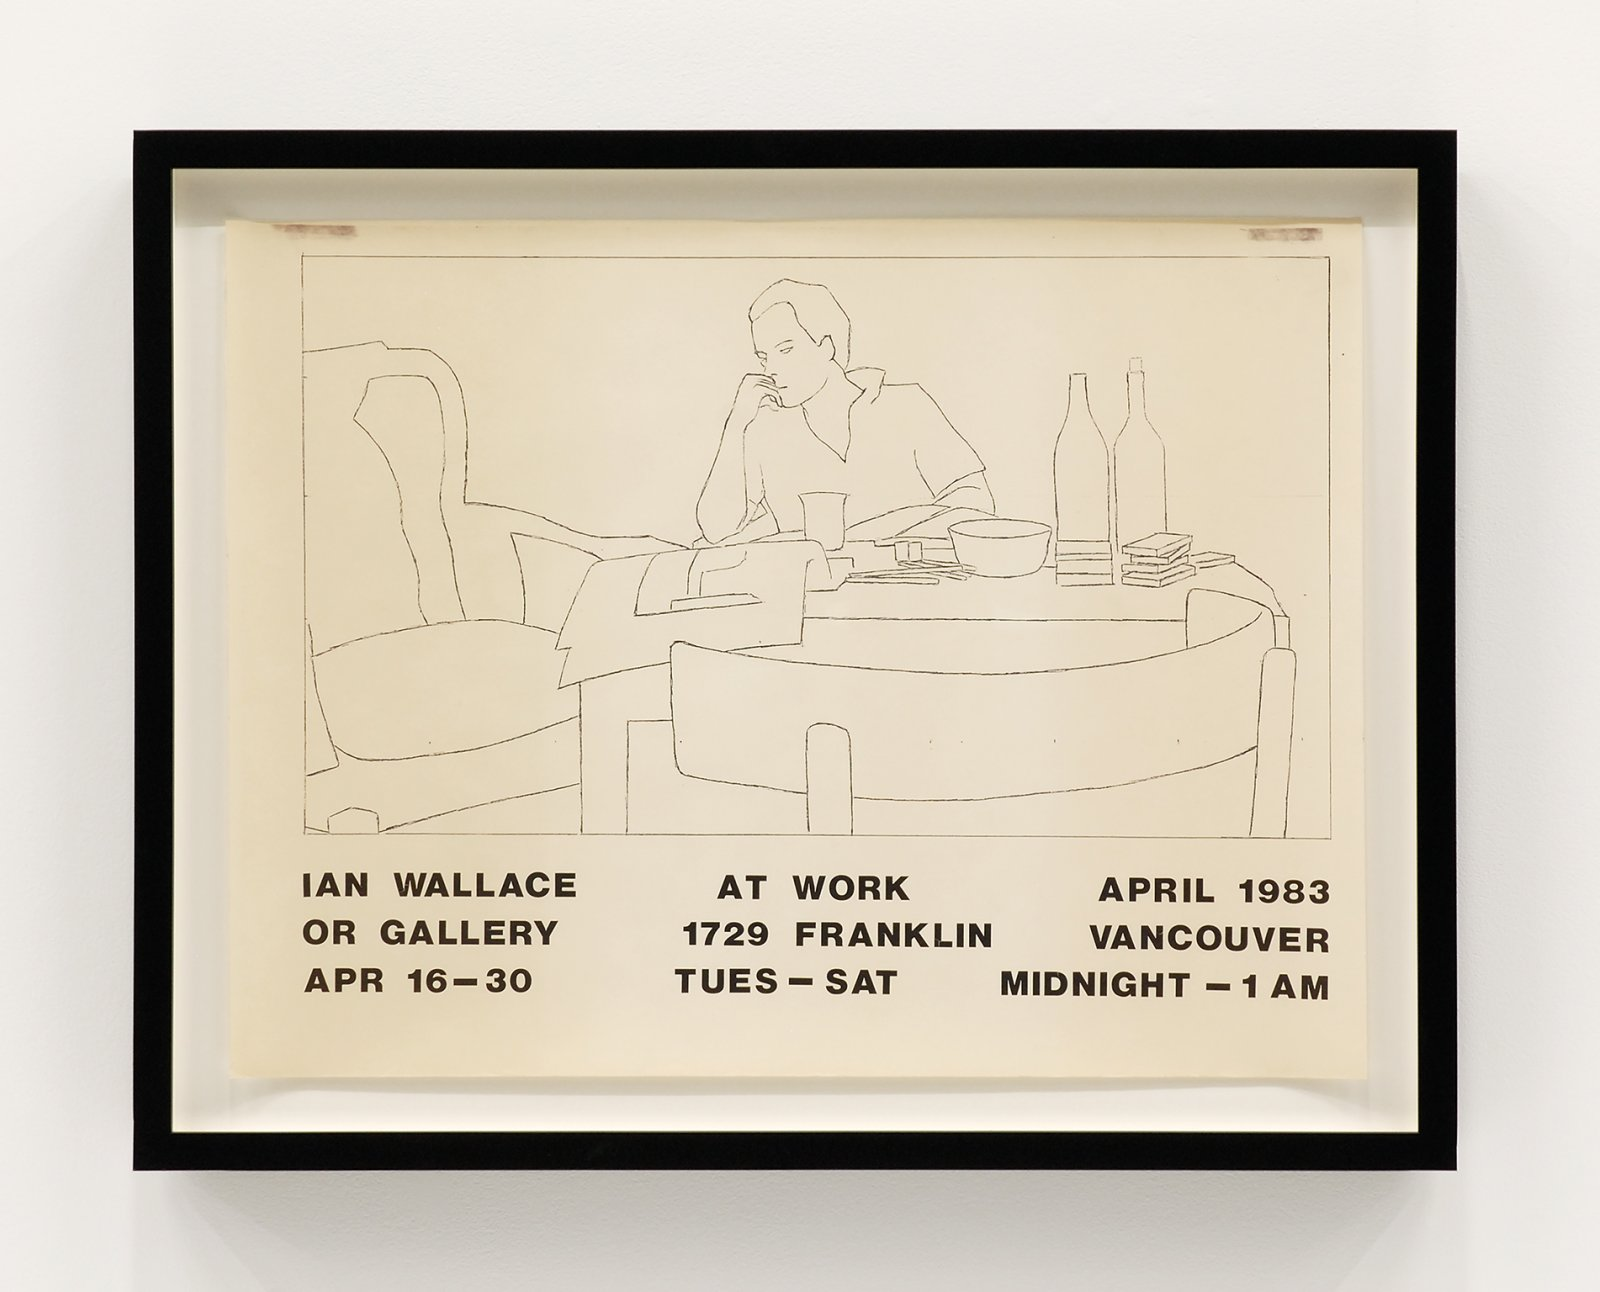 Ian Wallace, At Work 1983, 1983, exhibition poster, ink on paper, 18 x 24 in. (46 x 60 cm) by Ian Wallace